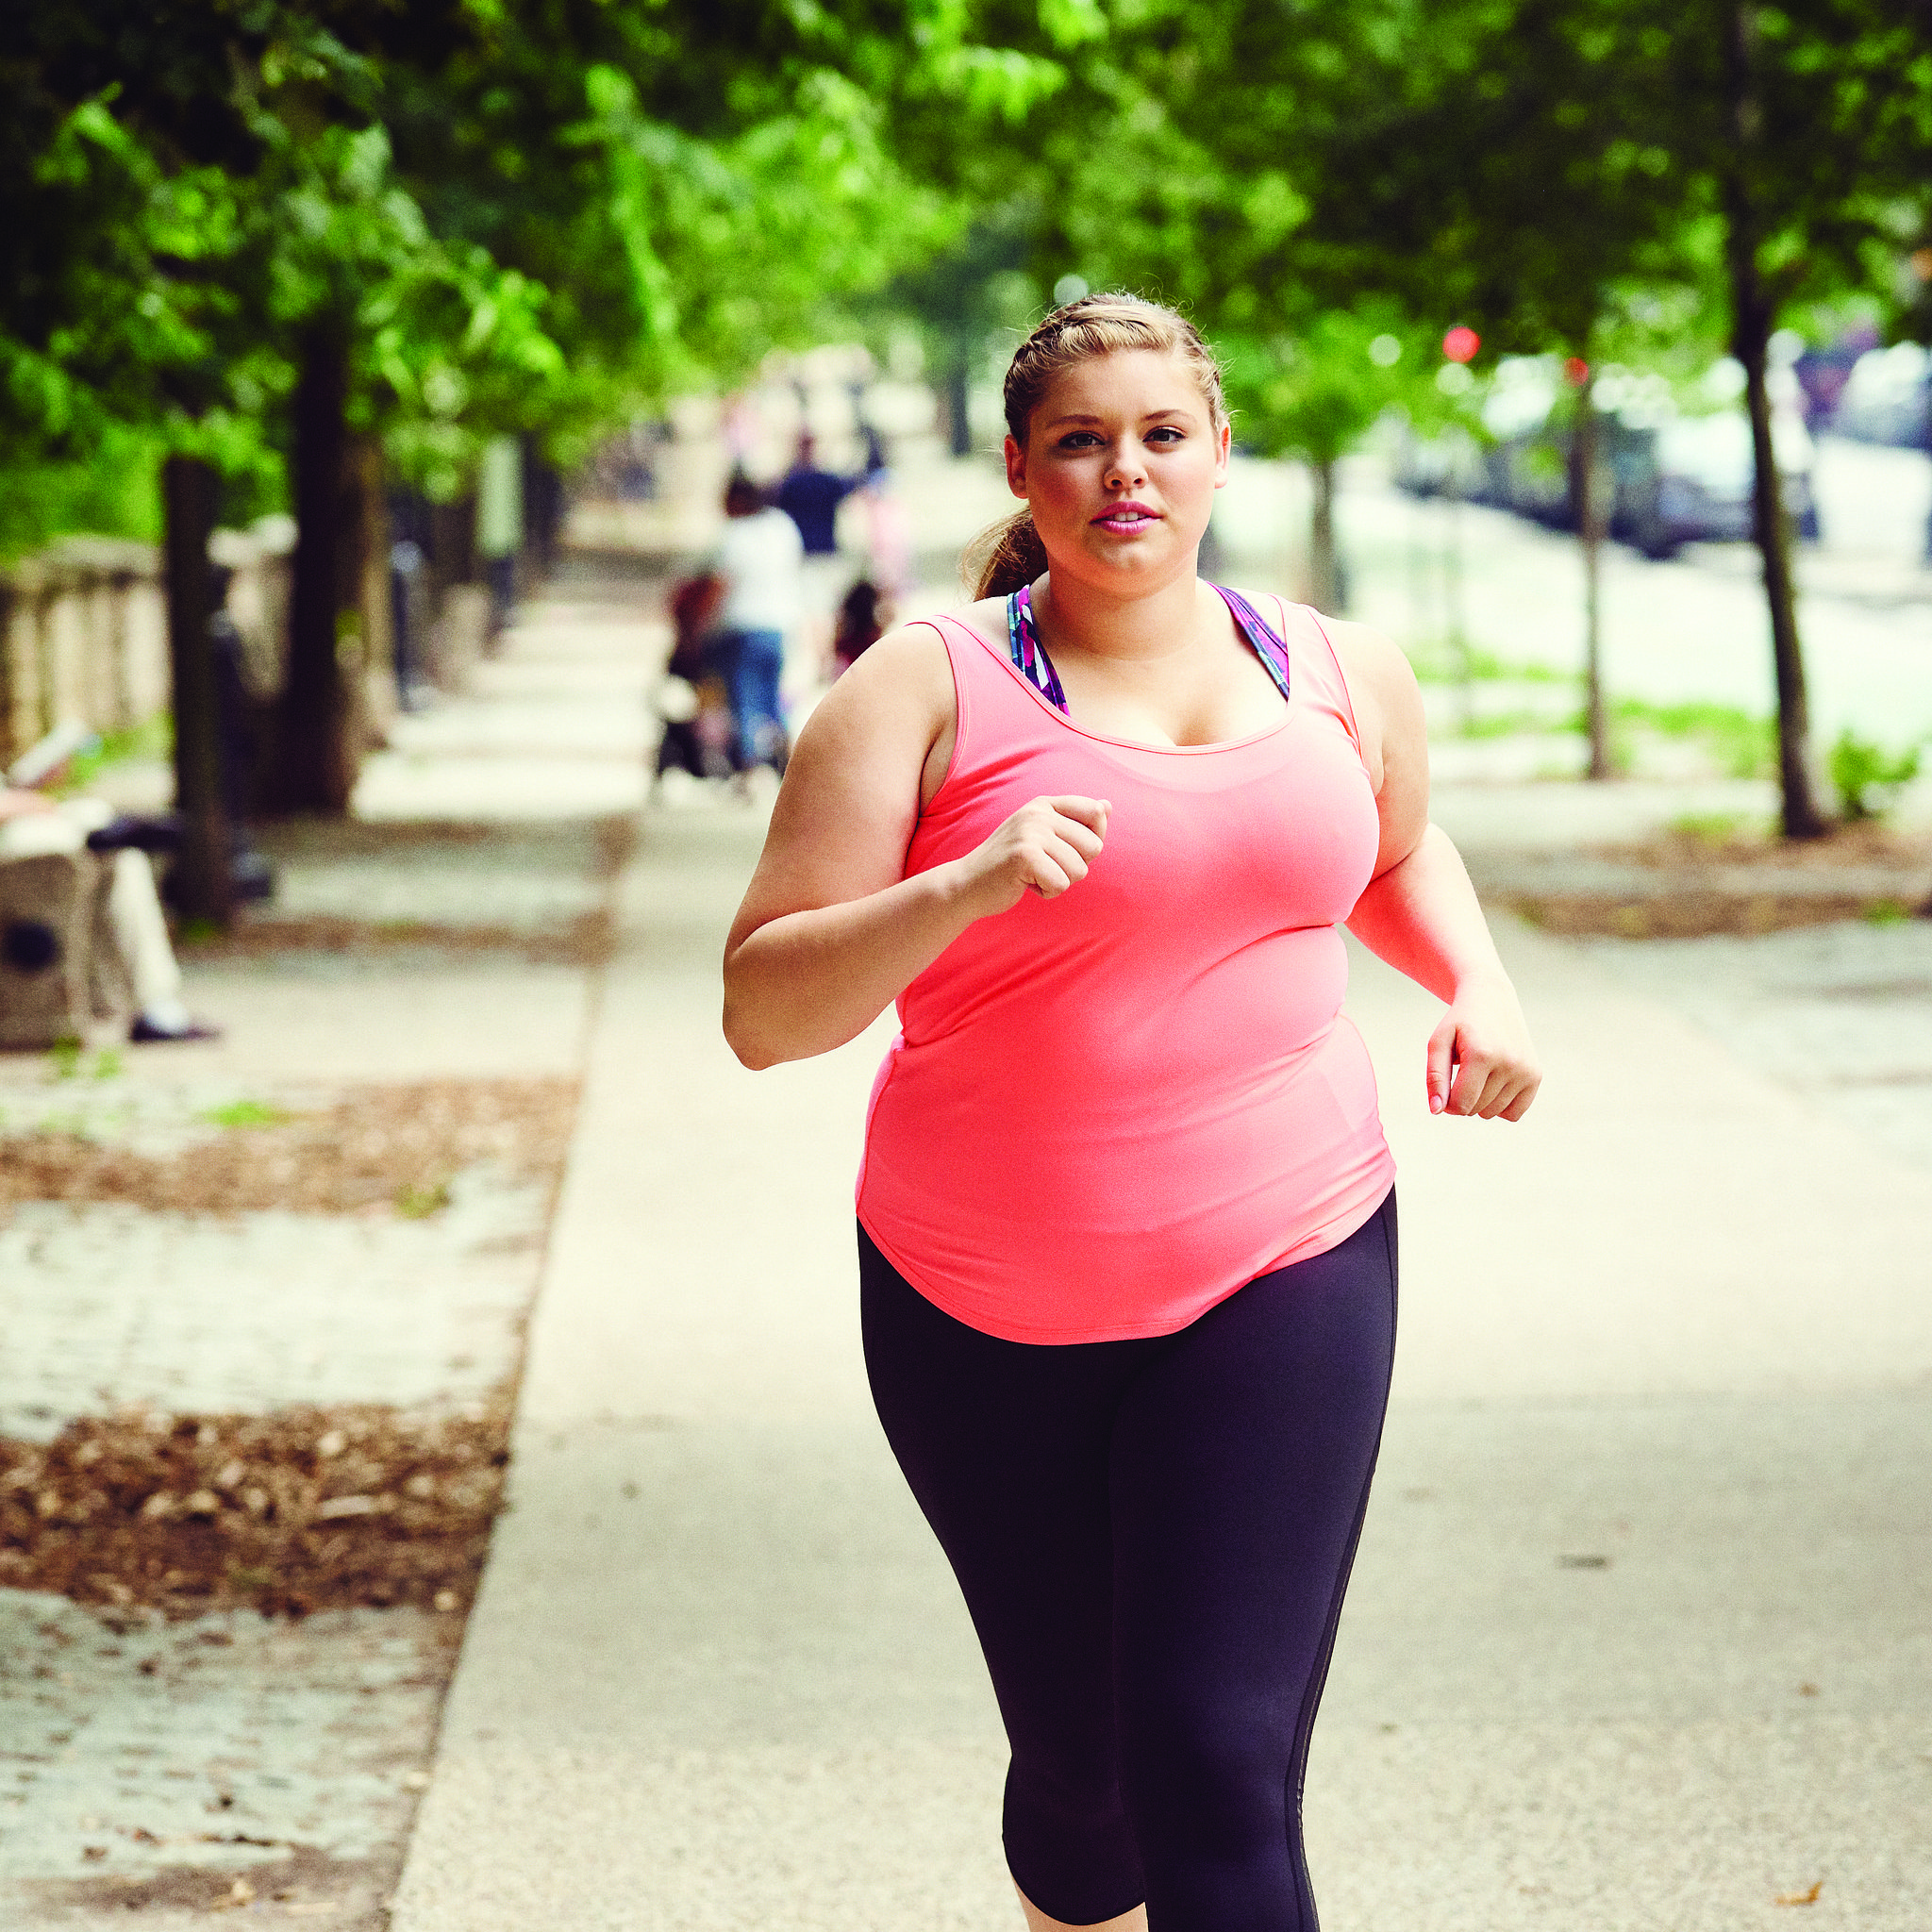 d2bef595_Women-Running-Plus-Size-Cover-Model-August-2015